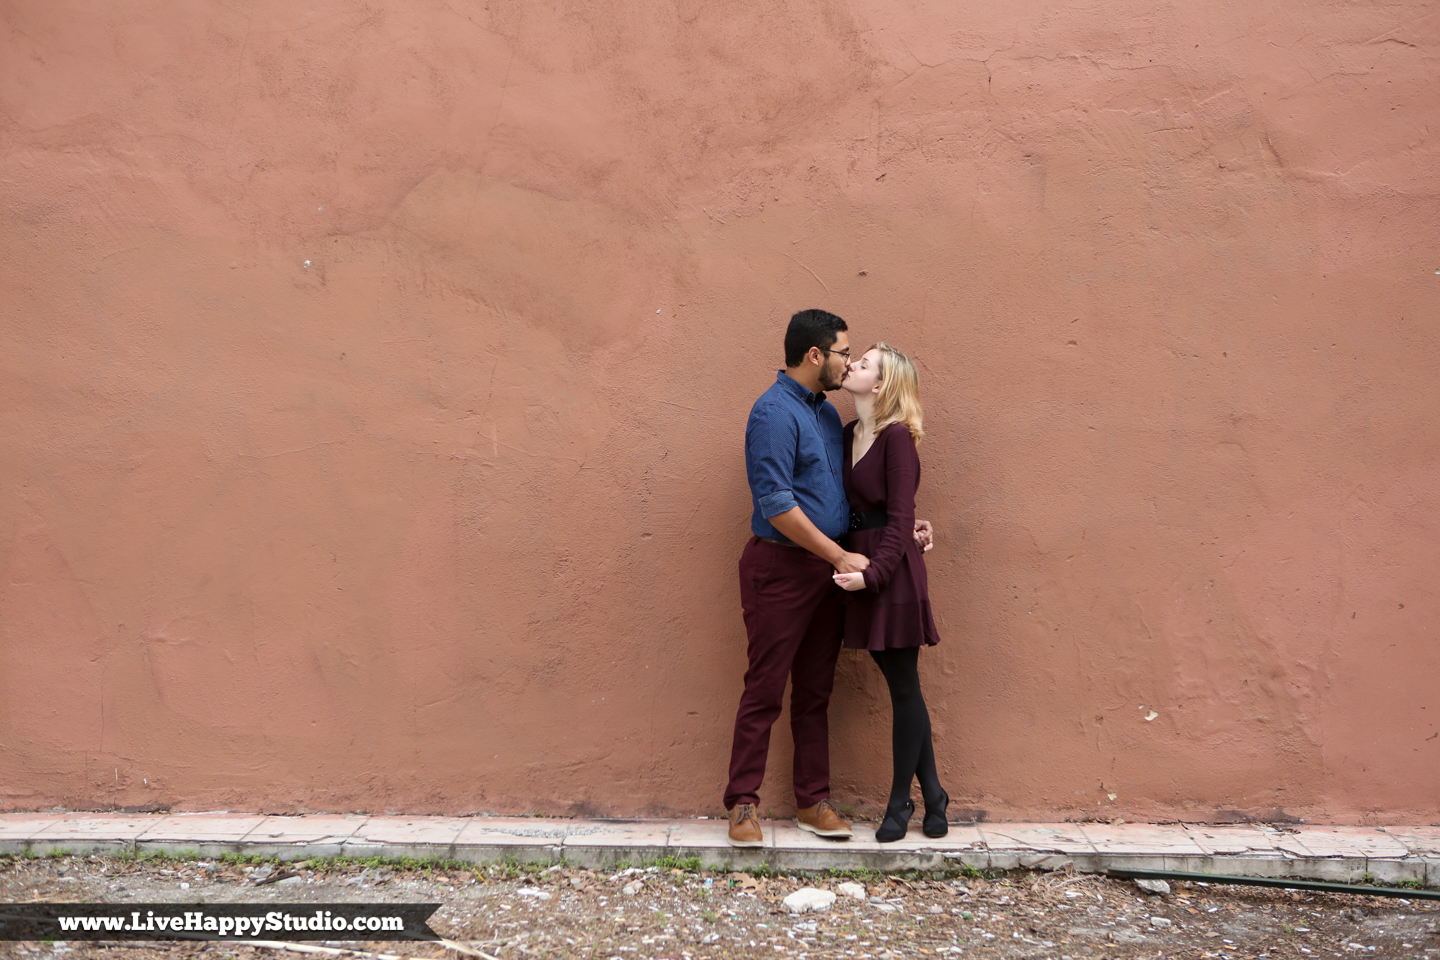 www.livehappystudio.com-church-street-engagement-session-photographer-orlando-central-florida-wedding-photographer-13.jpg